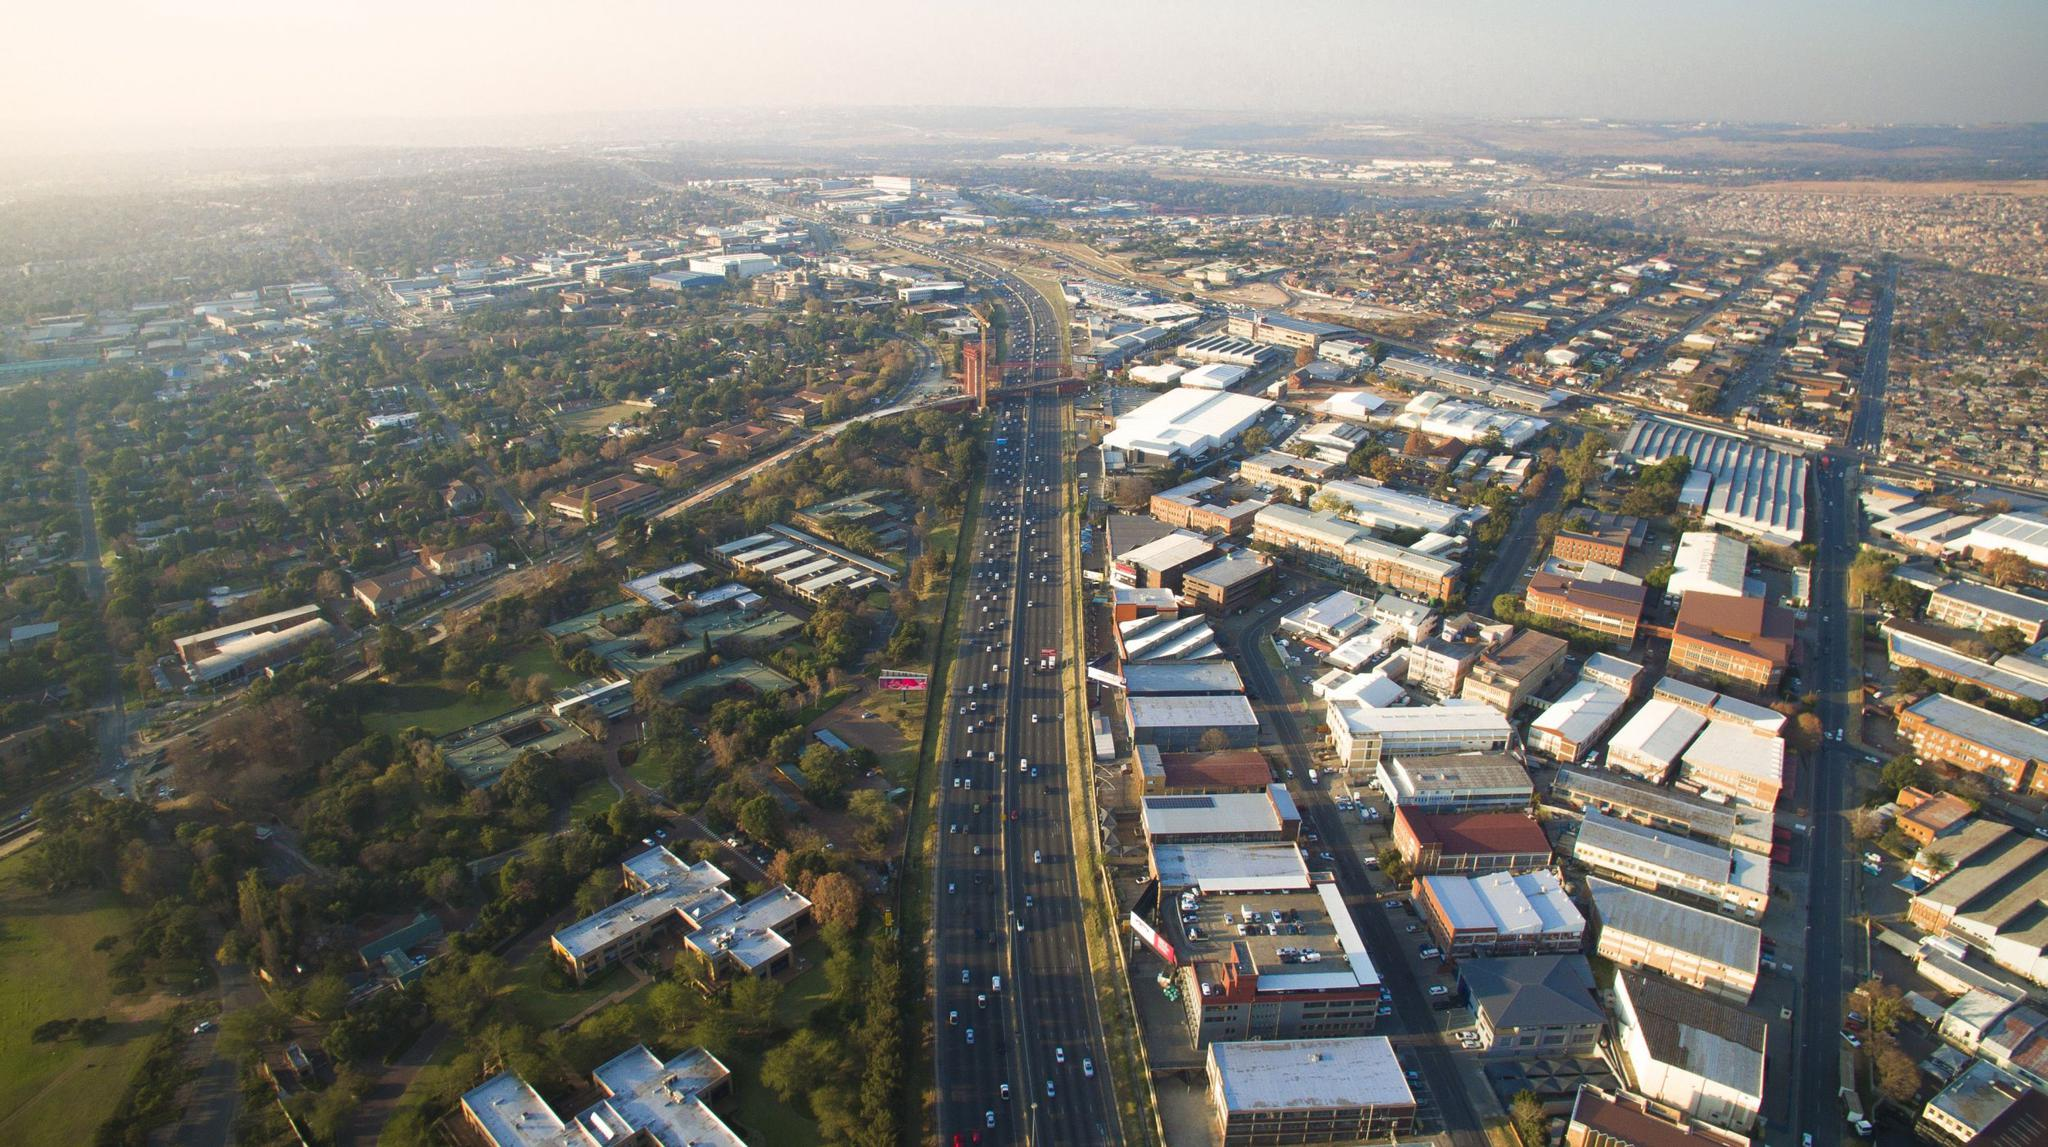 The bridge in the photograph is one of two being built that will carry bus rapid transit and pedestrians from Alexandra to Sandton. Thousands of commuters make this trip each day, on thoroughfares not designed to carry heavy pedestrian traffic. Bridges such as these, in theory, will ease access and improve the safety of commuters to Sandton.